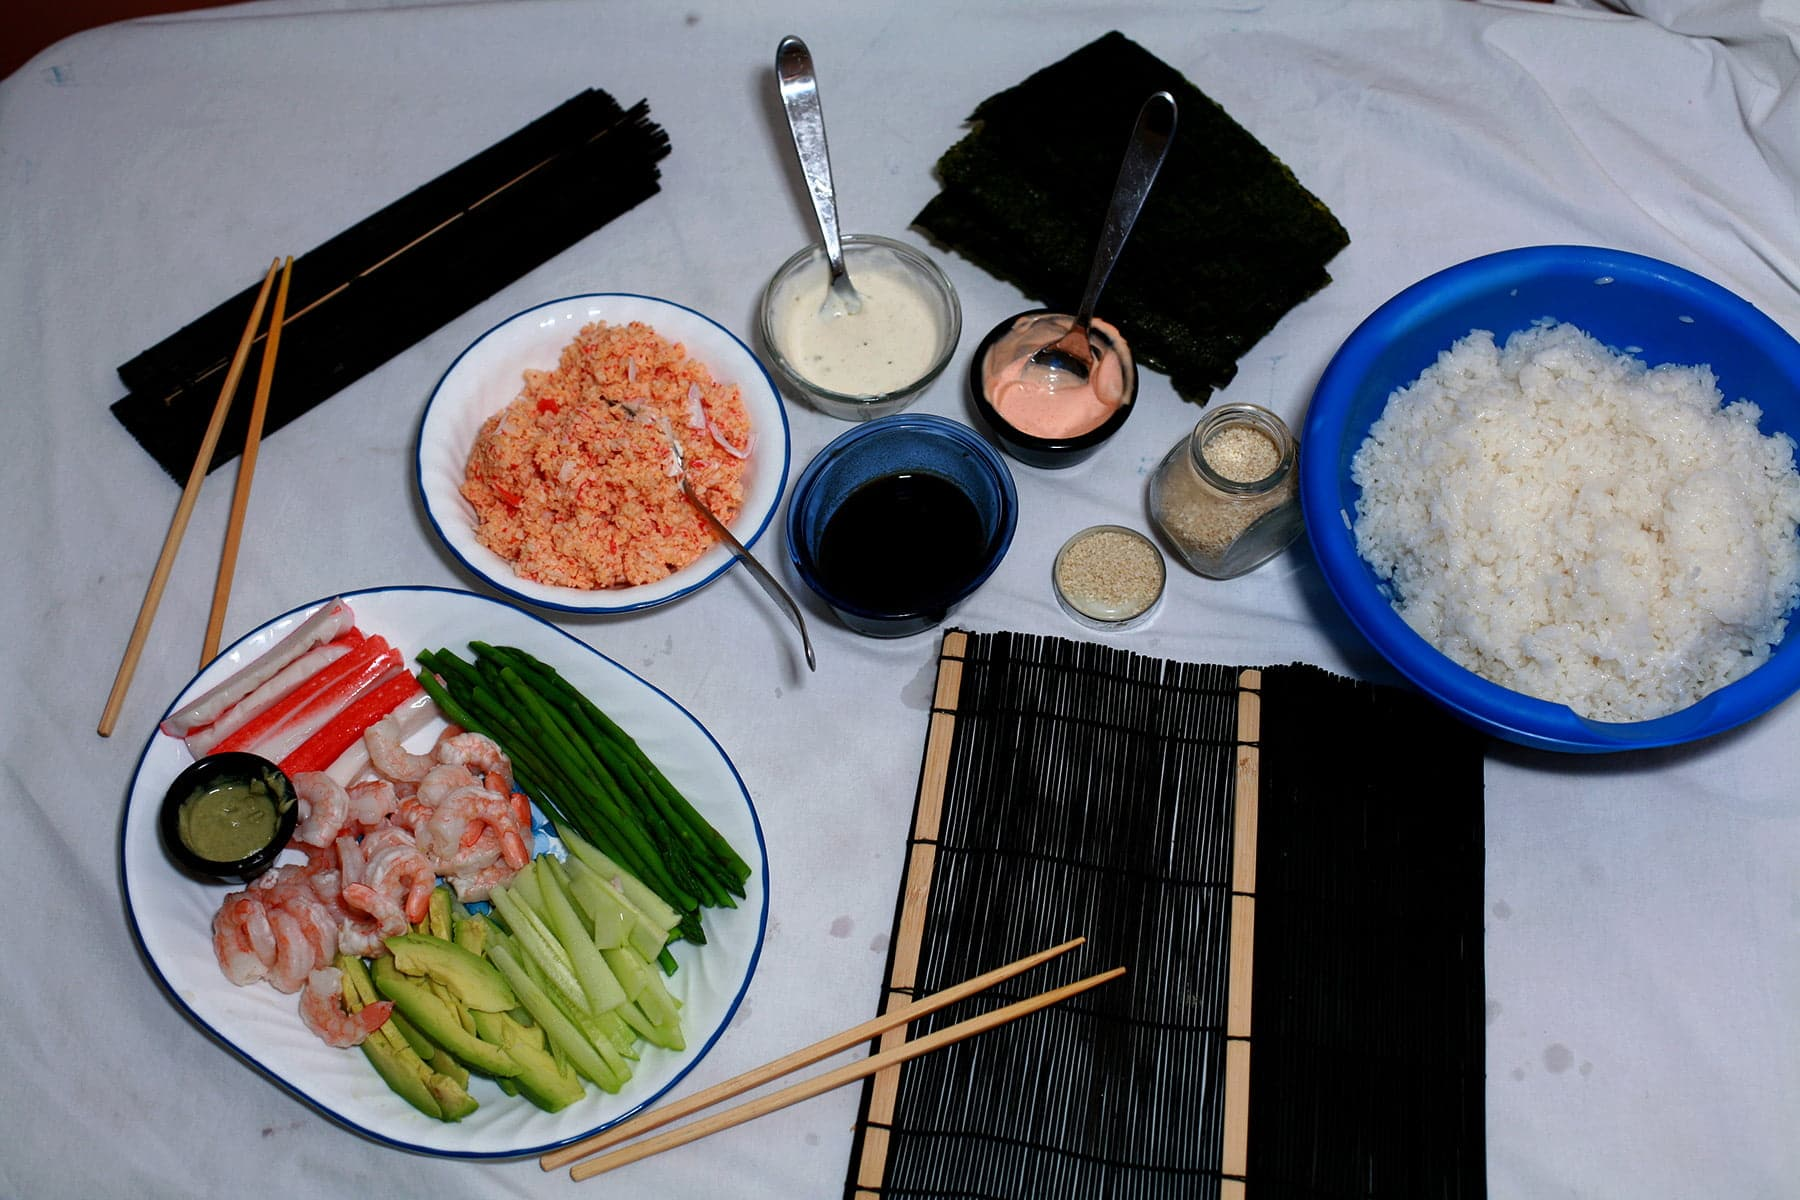 Various sushi fixings are shown laid out on a paper-lined table. There are plates of fillings, a bowl of rice, a stack of nori seets, and wrapping utensils.